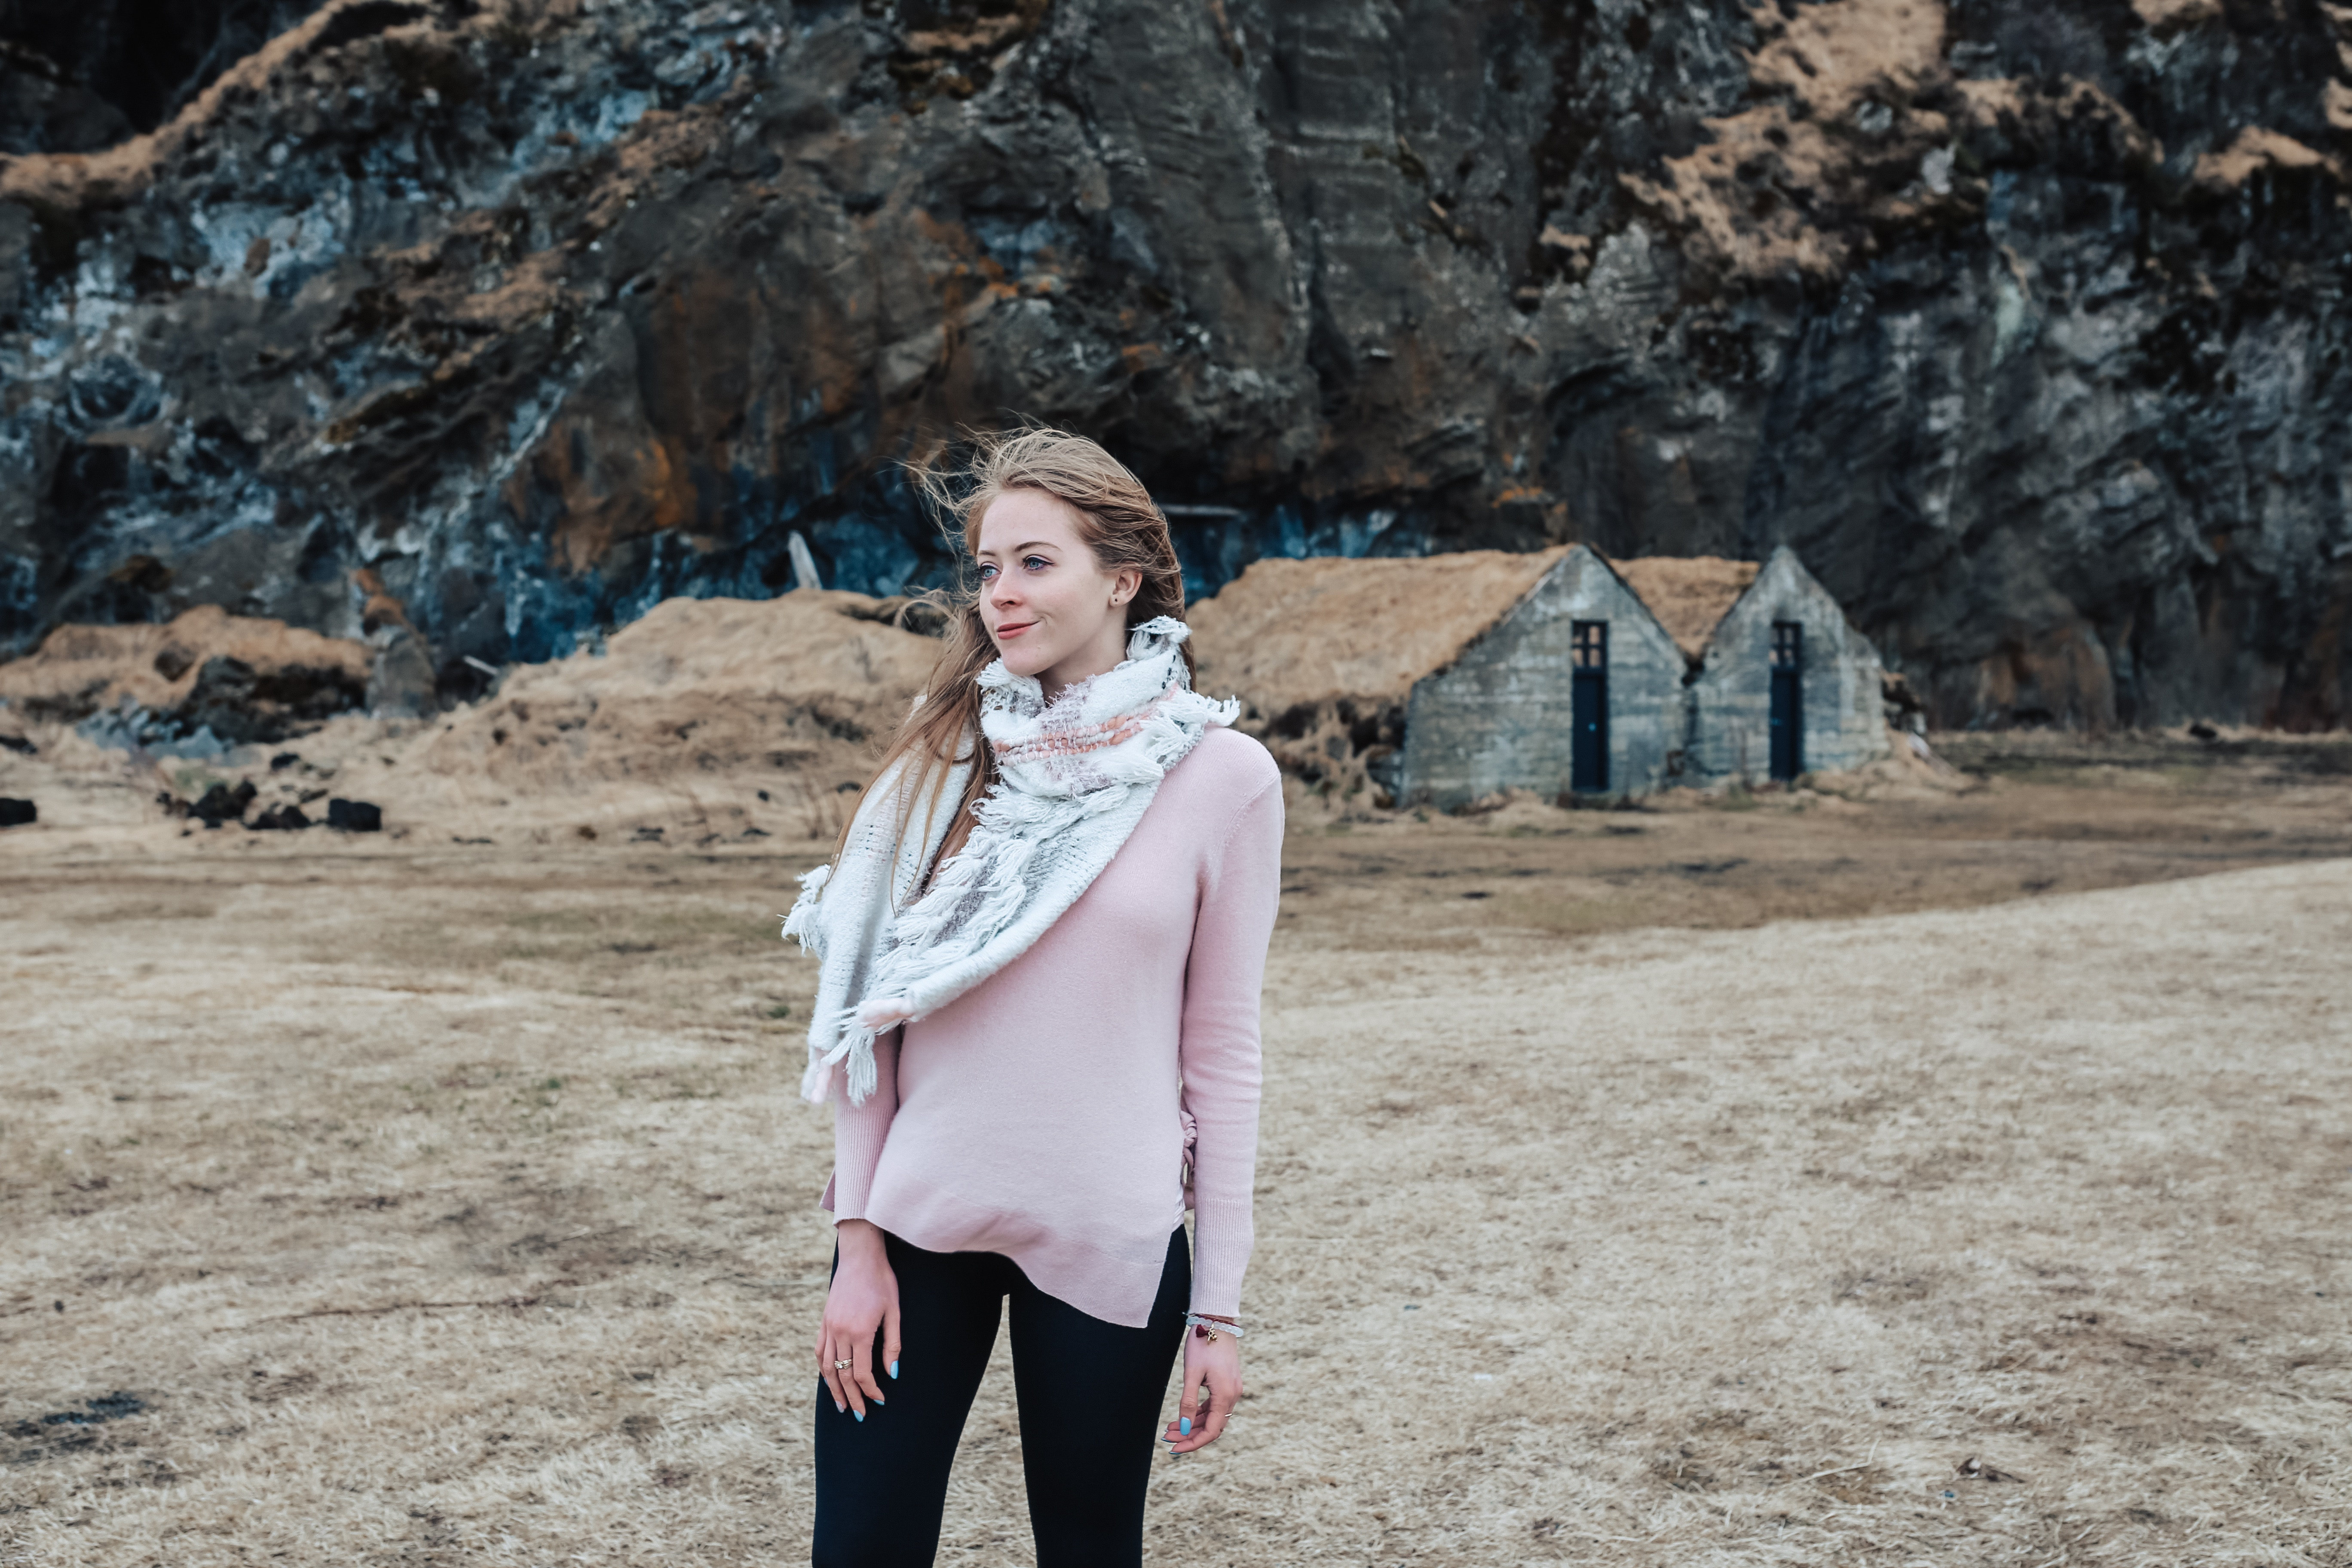 Wearing a Halogen Cashmere sweater in Iceland